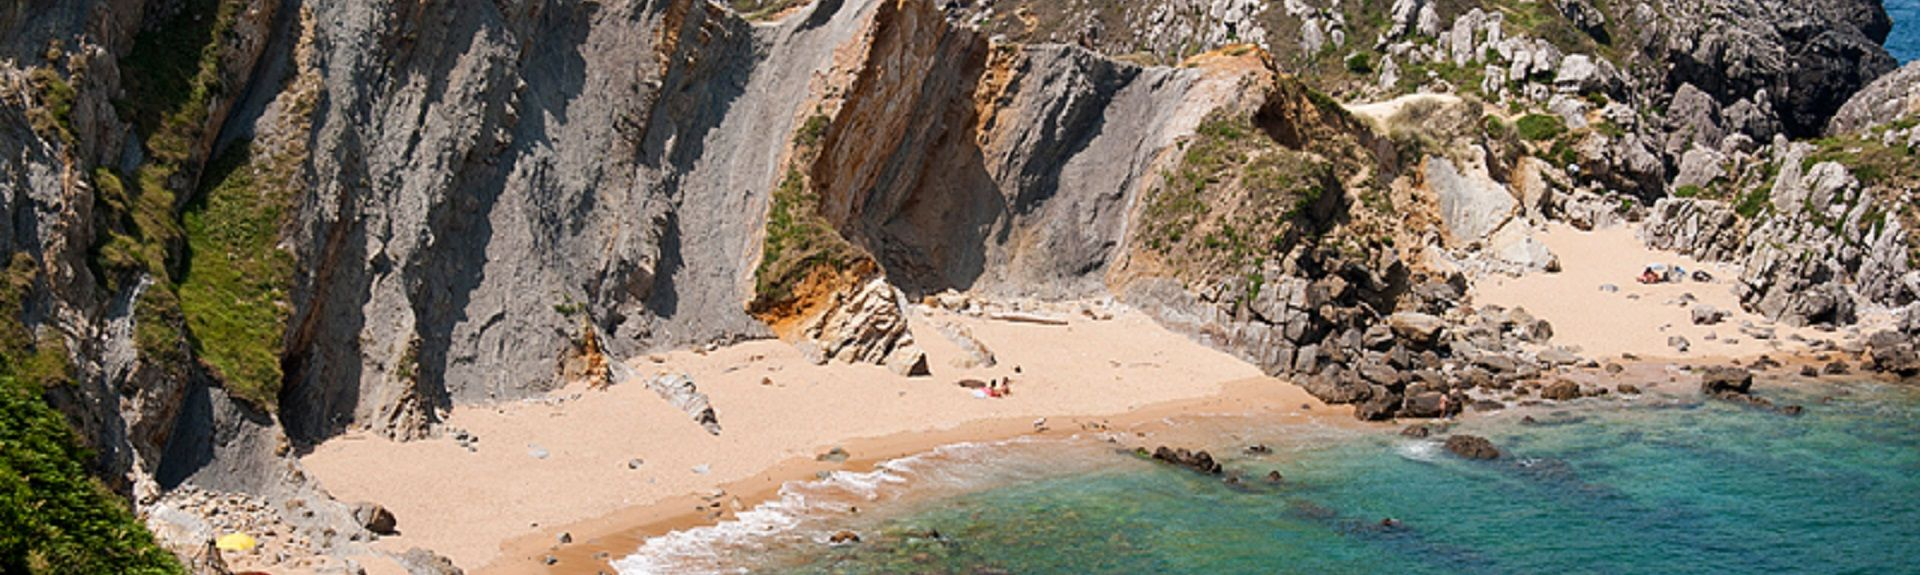 Somo Beach, Ribamontan al Mar, Spain